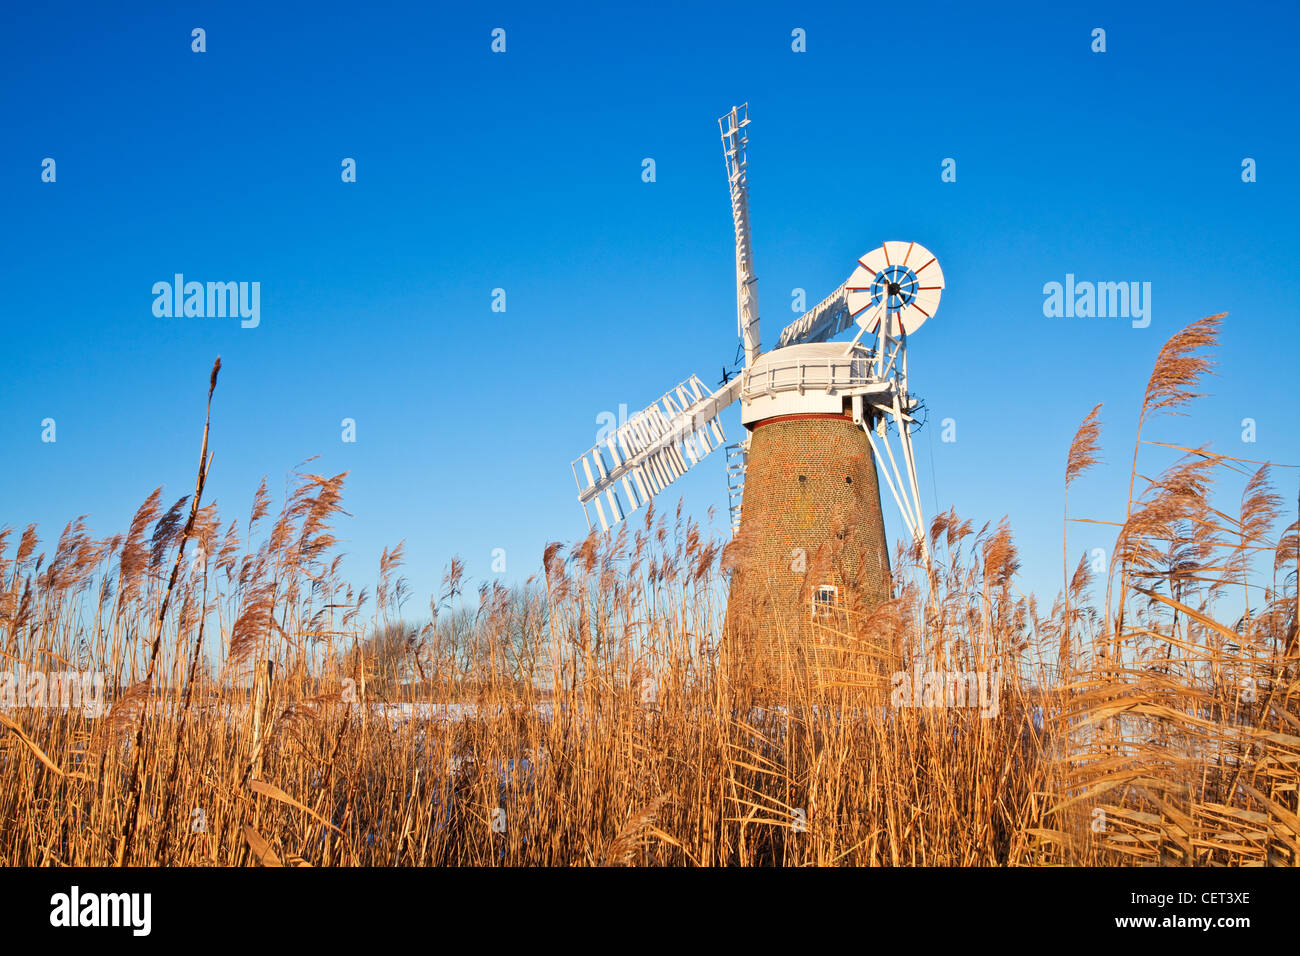 The newly restored Hardley Drainage Mill, originally built in 1874, on the Norfolk Broads. - Stock Image